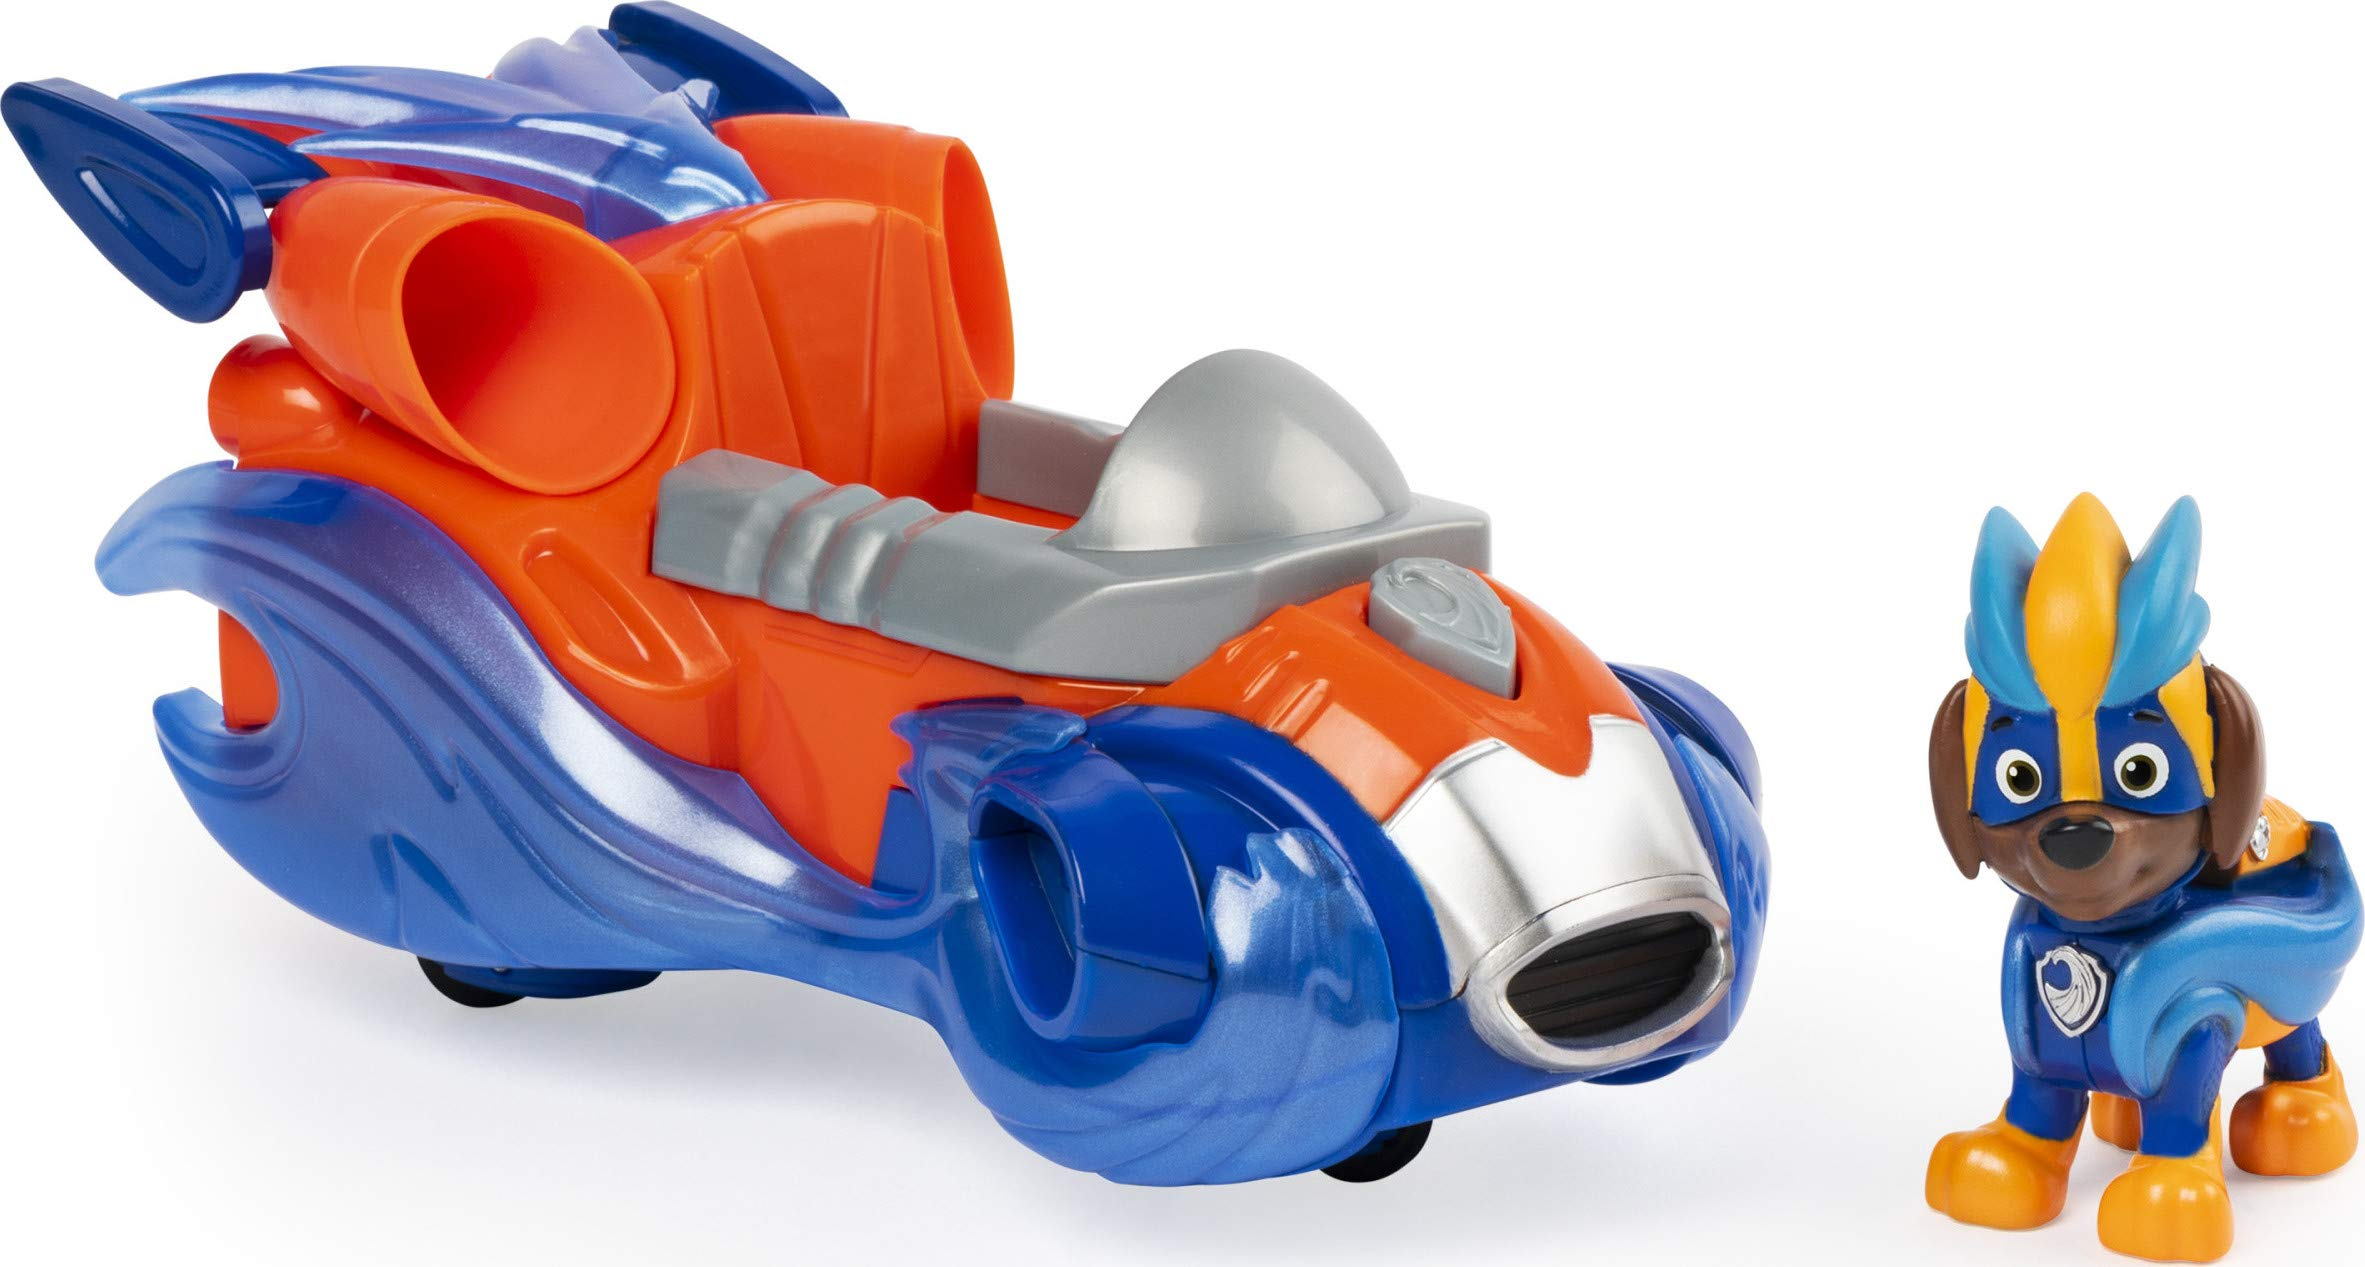 PAW Patrol Mighty Pups Charged Up Zuma's Deluxe Vehicle with Lights and Sounds